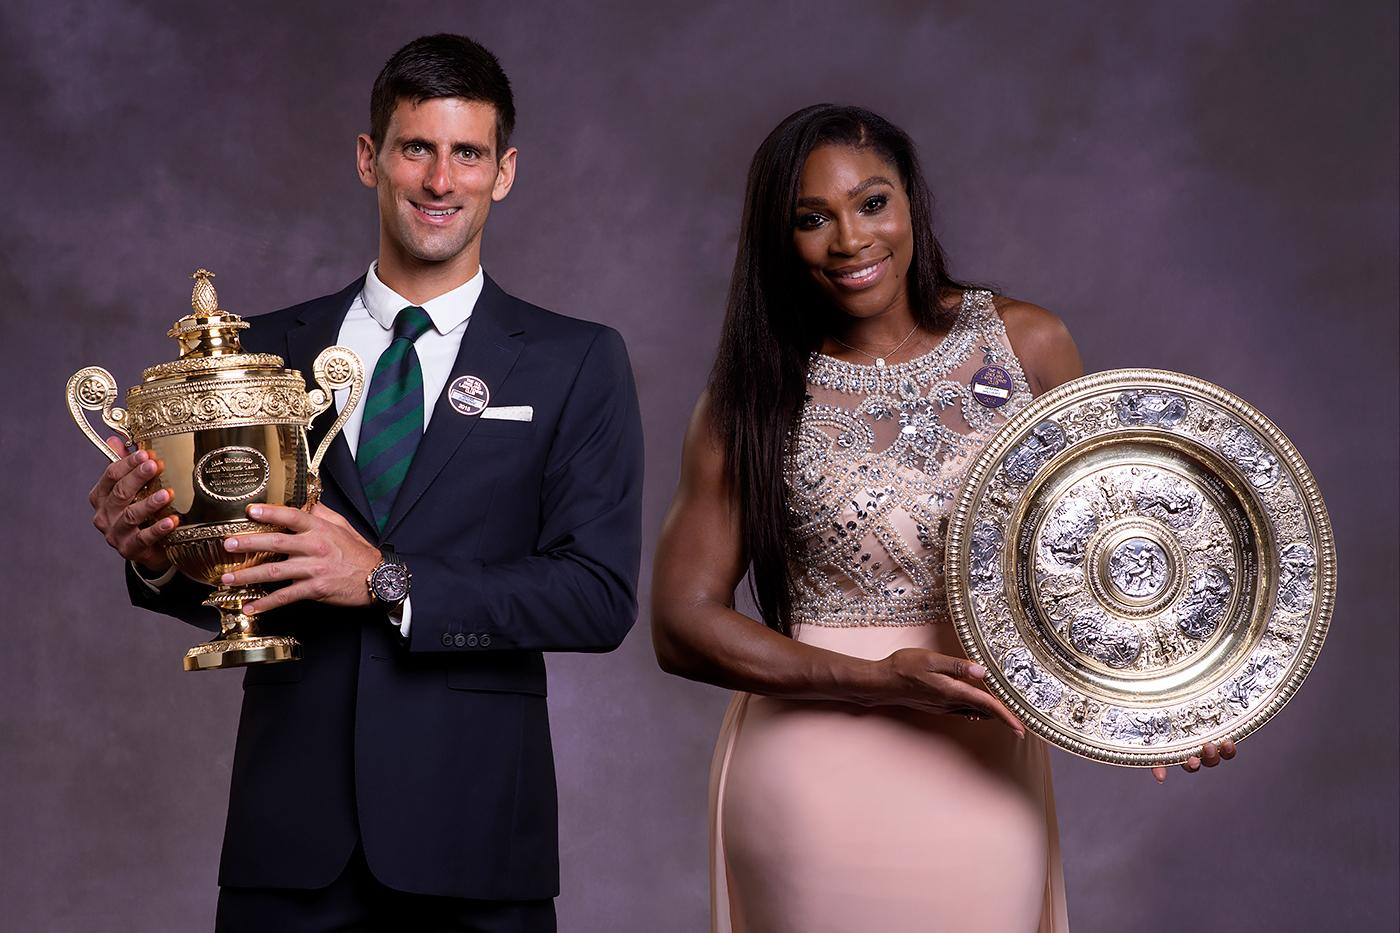 .@macgavin770 takes a look at which brand sponsors really won at this year's Wimbledon http://t.co/S37n8FebJJ http://t.co/JOsPU1Xhvw